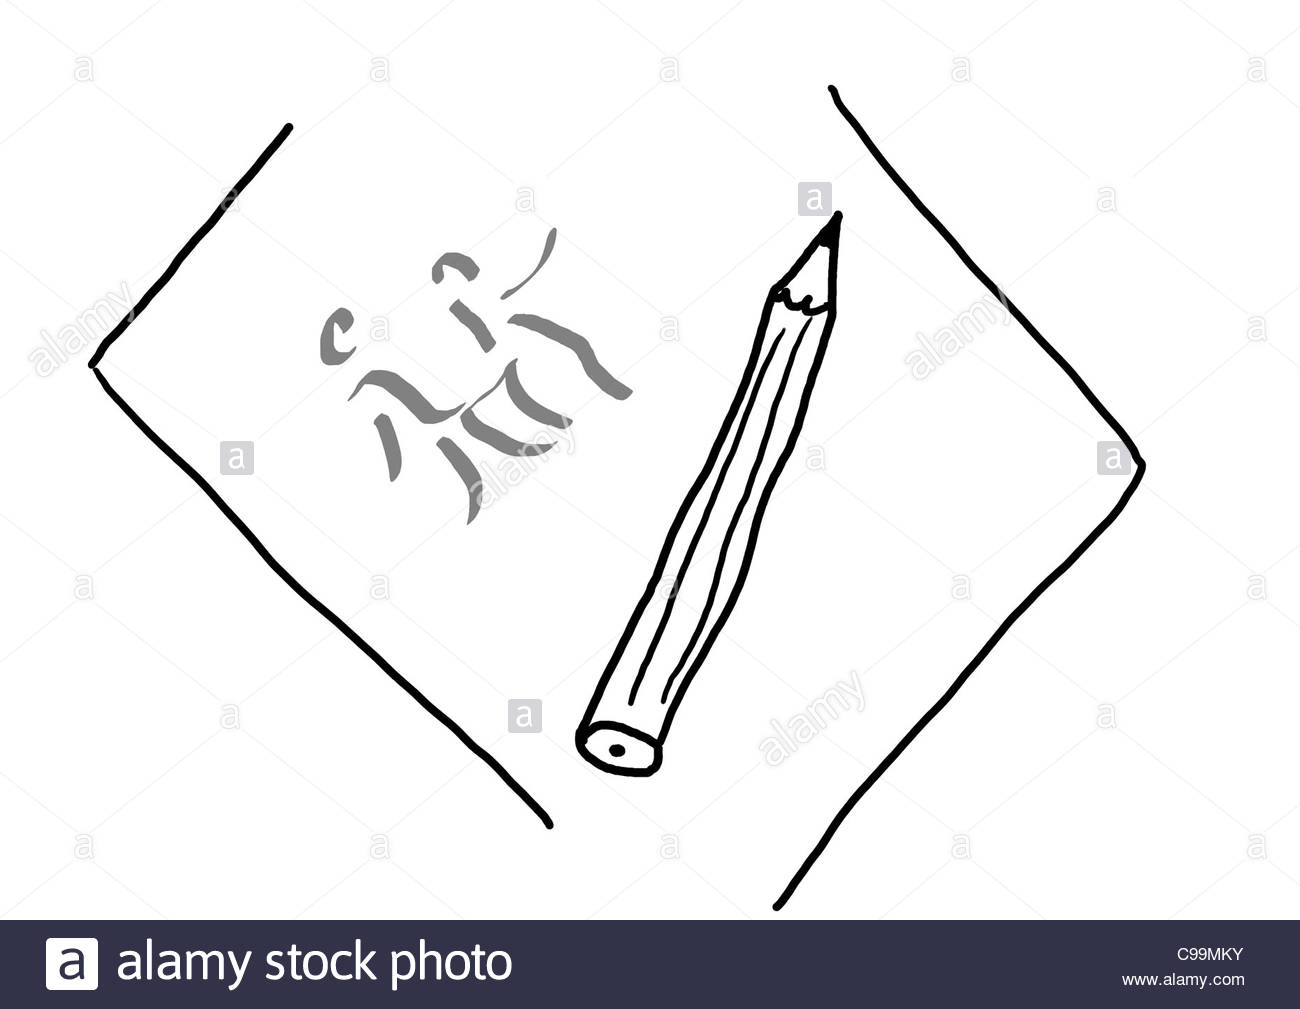 drawing paper black and white stock photos & images - alamy